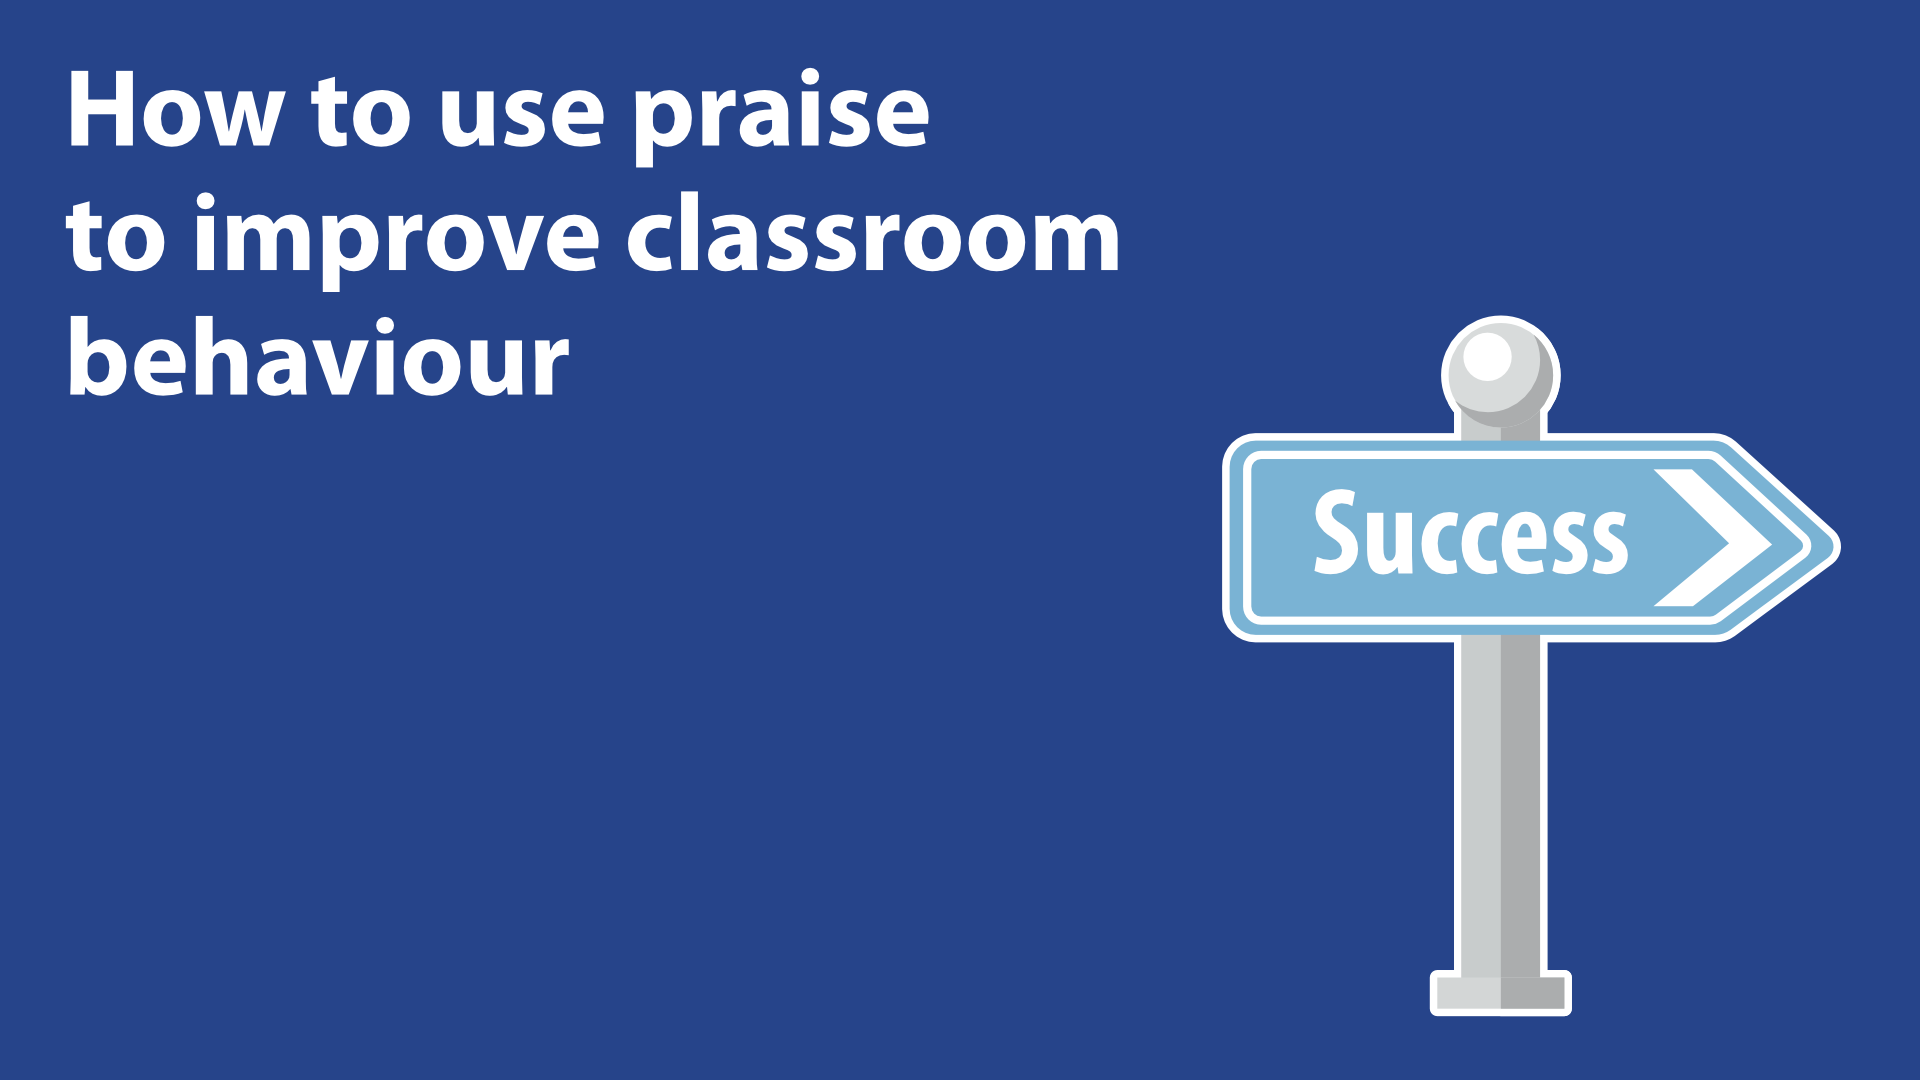 How To Use Praise To Improve Classroom Behaviour image